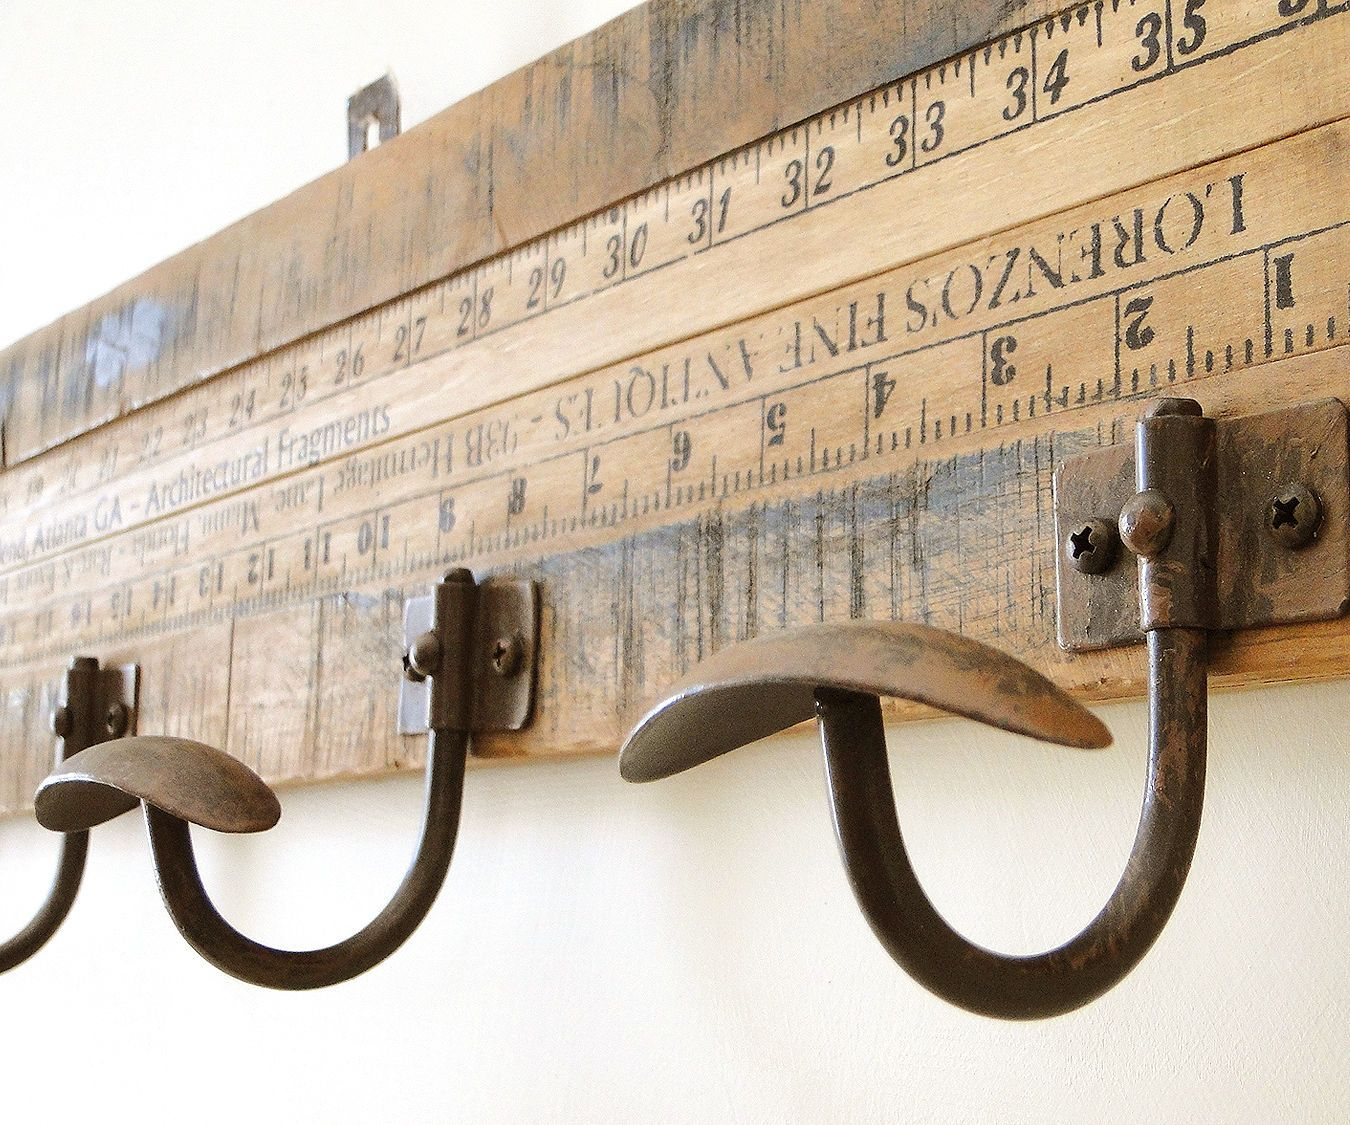 Beautifully Aged Wood With Gorgeous Big Rounded Coat Hooks It Will Give You Pleasure Every Time You Use It Each One Looks Slightly D Aging Wood Hook Rack Hook